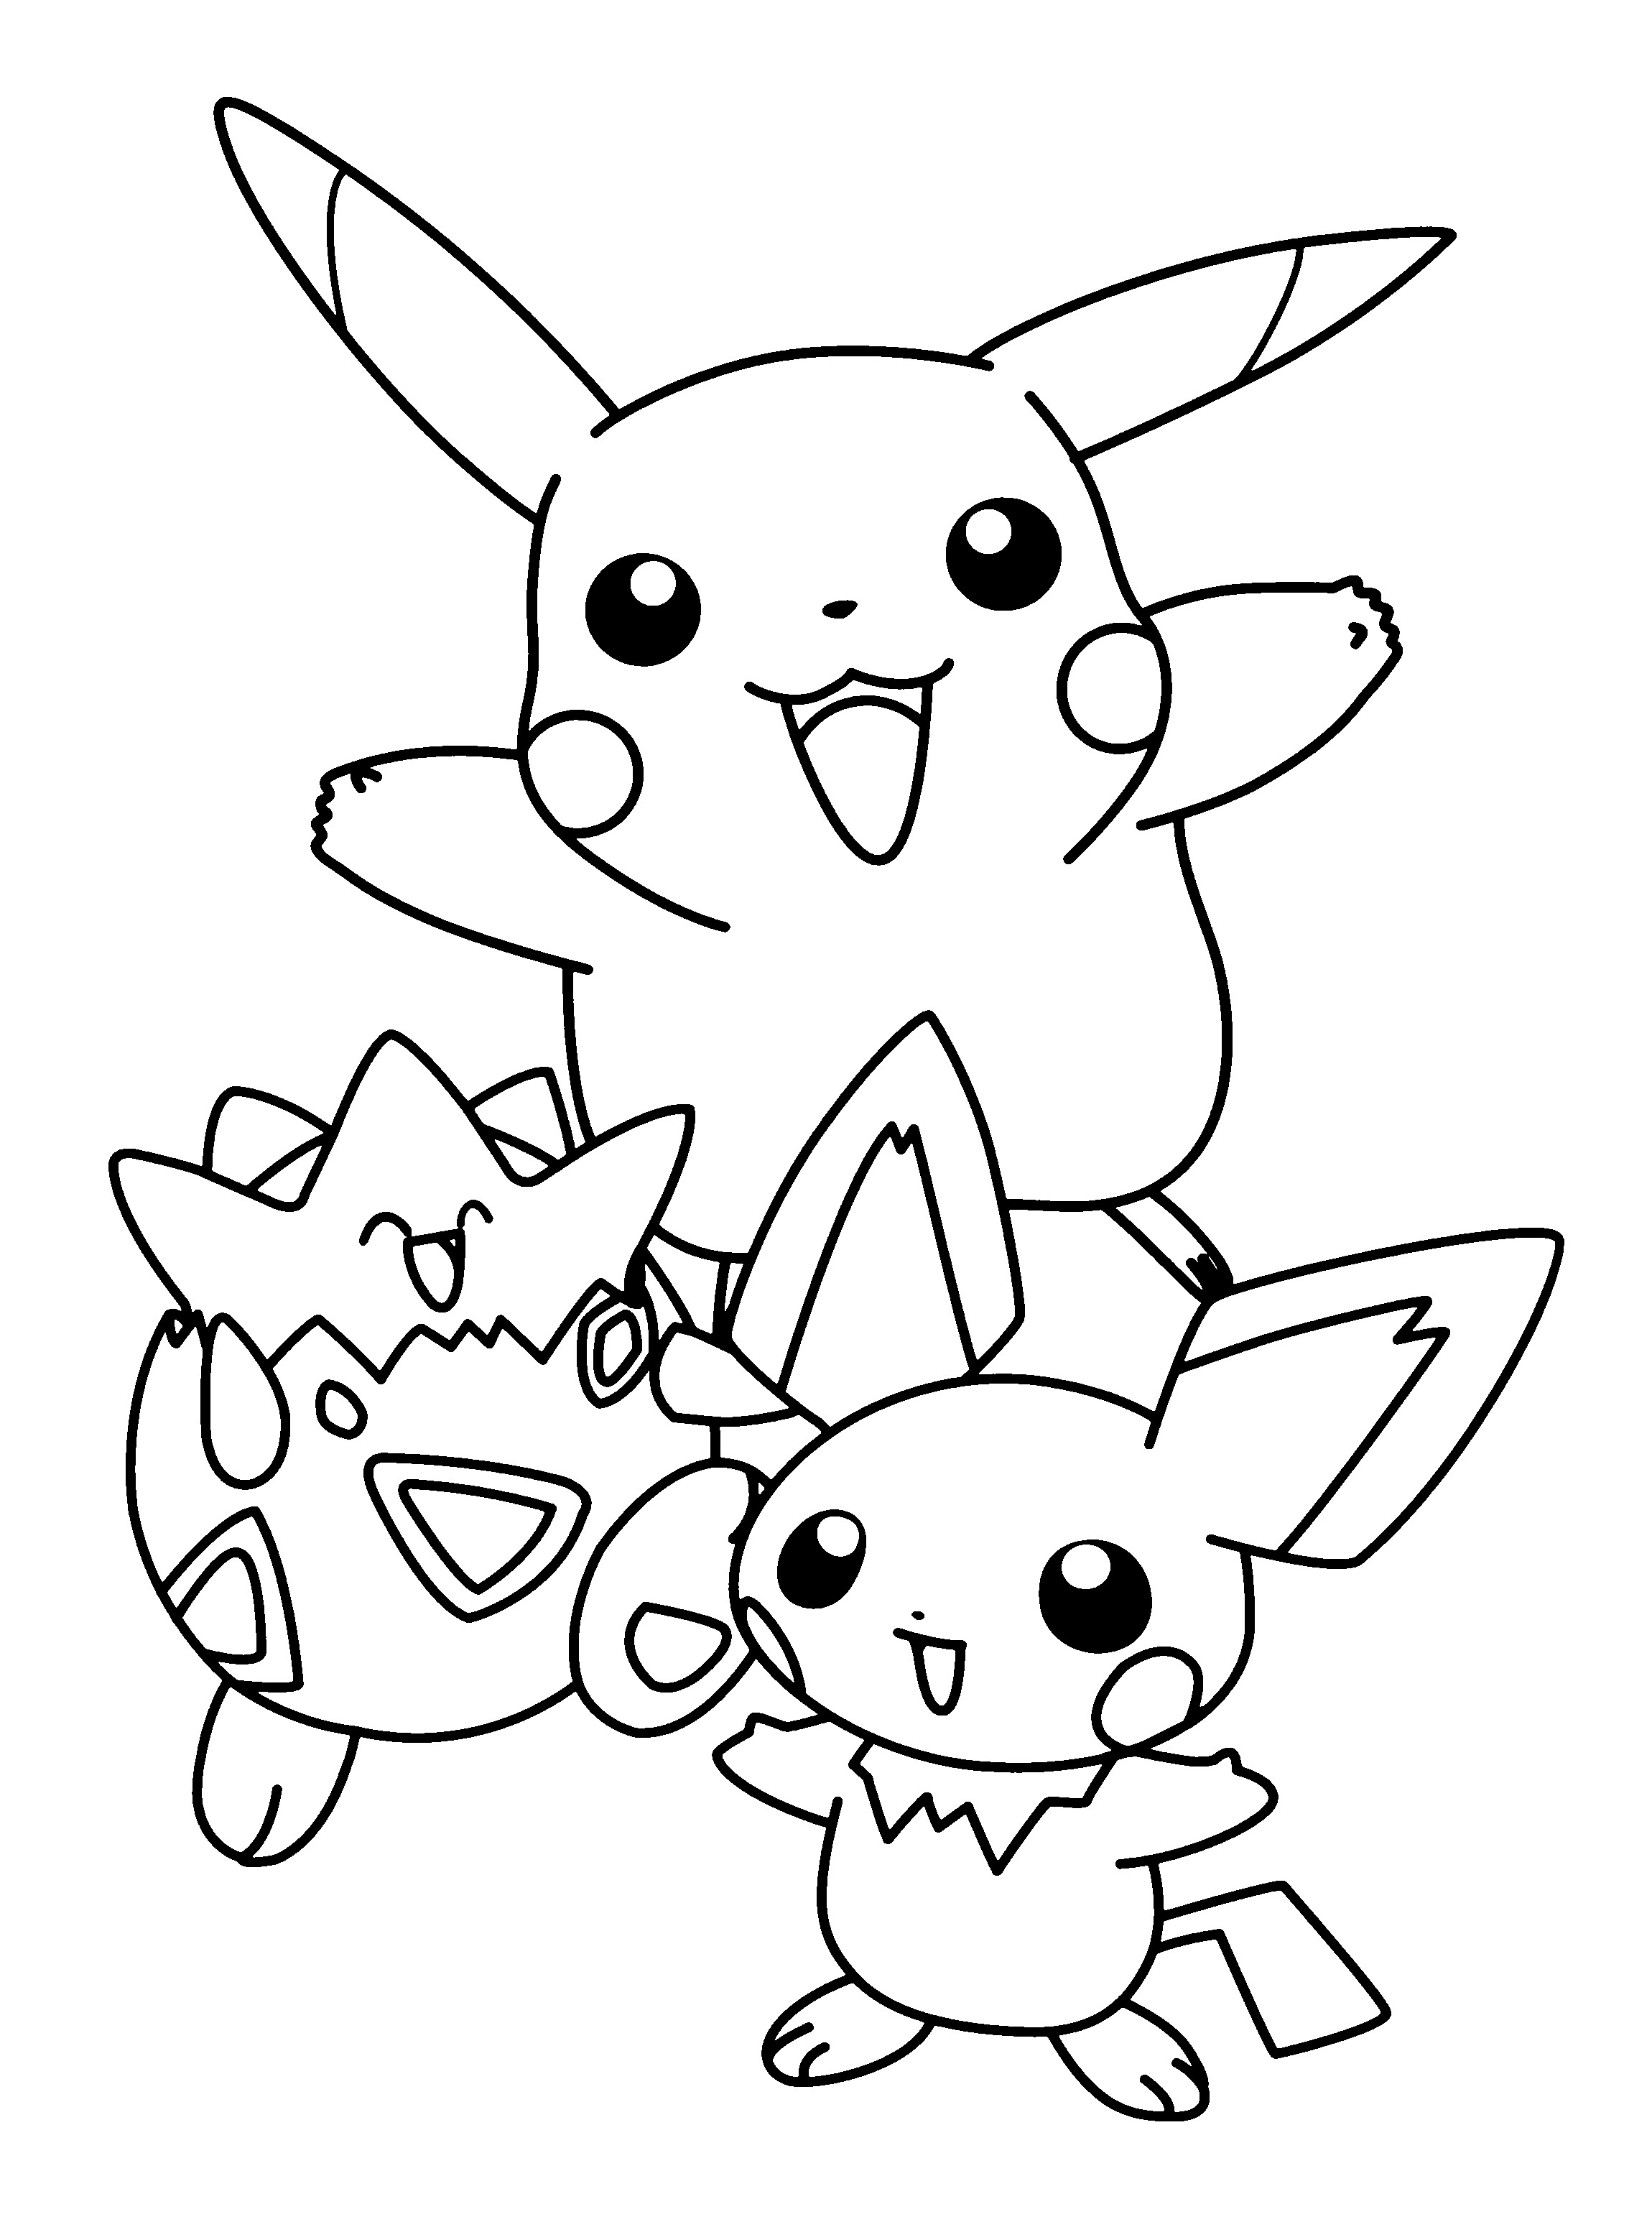 2300x3100 Ideas Collection Pokemon Coloring Pages Haxorus For Pokemon Deoxys